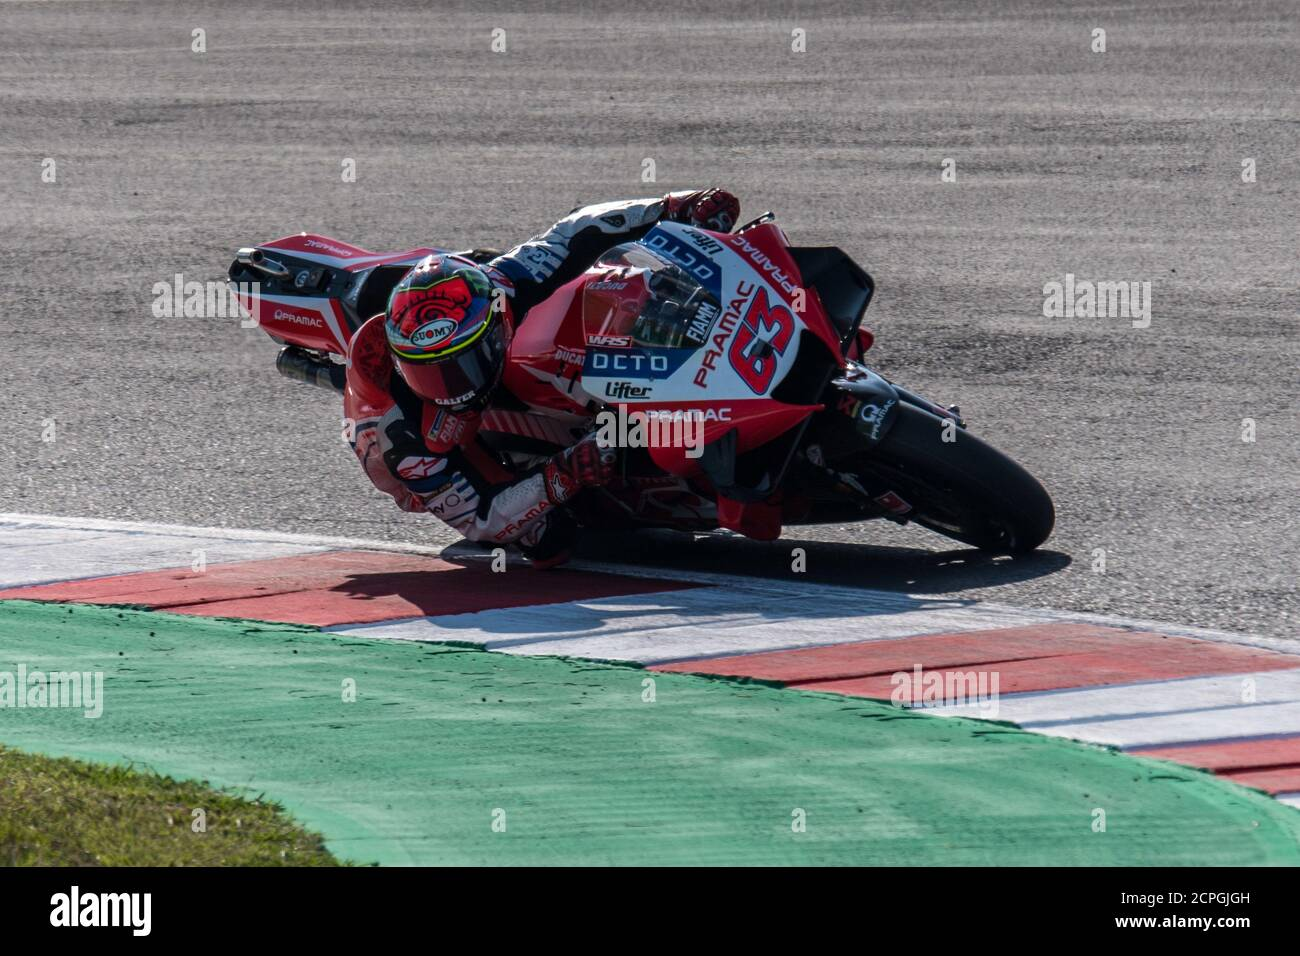 Francesco Bagnaia High Resolution Stock Photography And Images Alamy